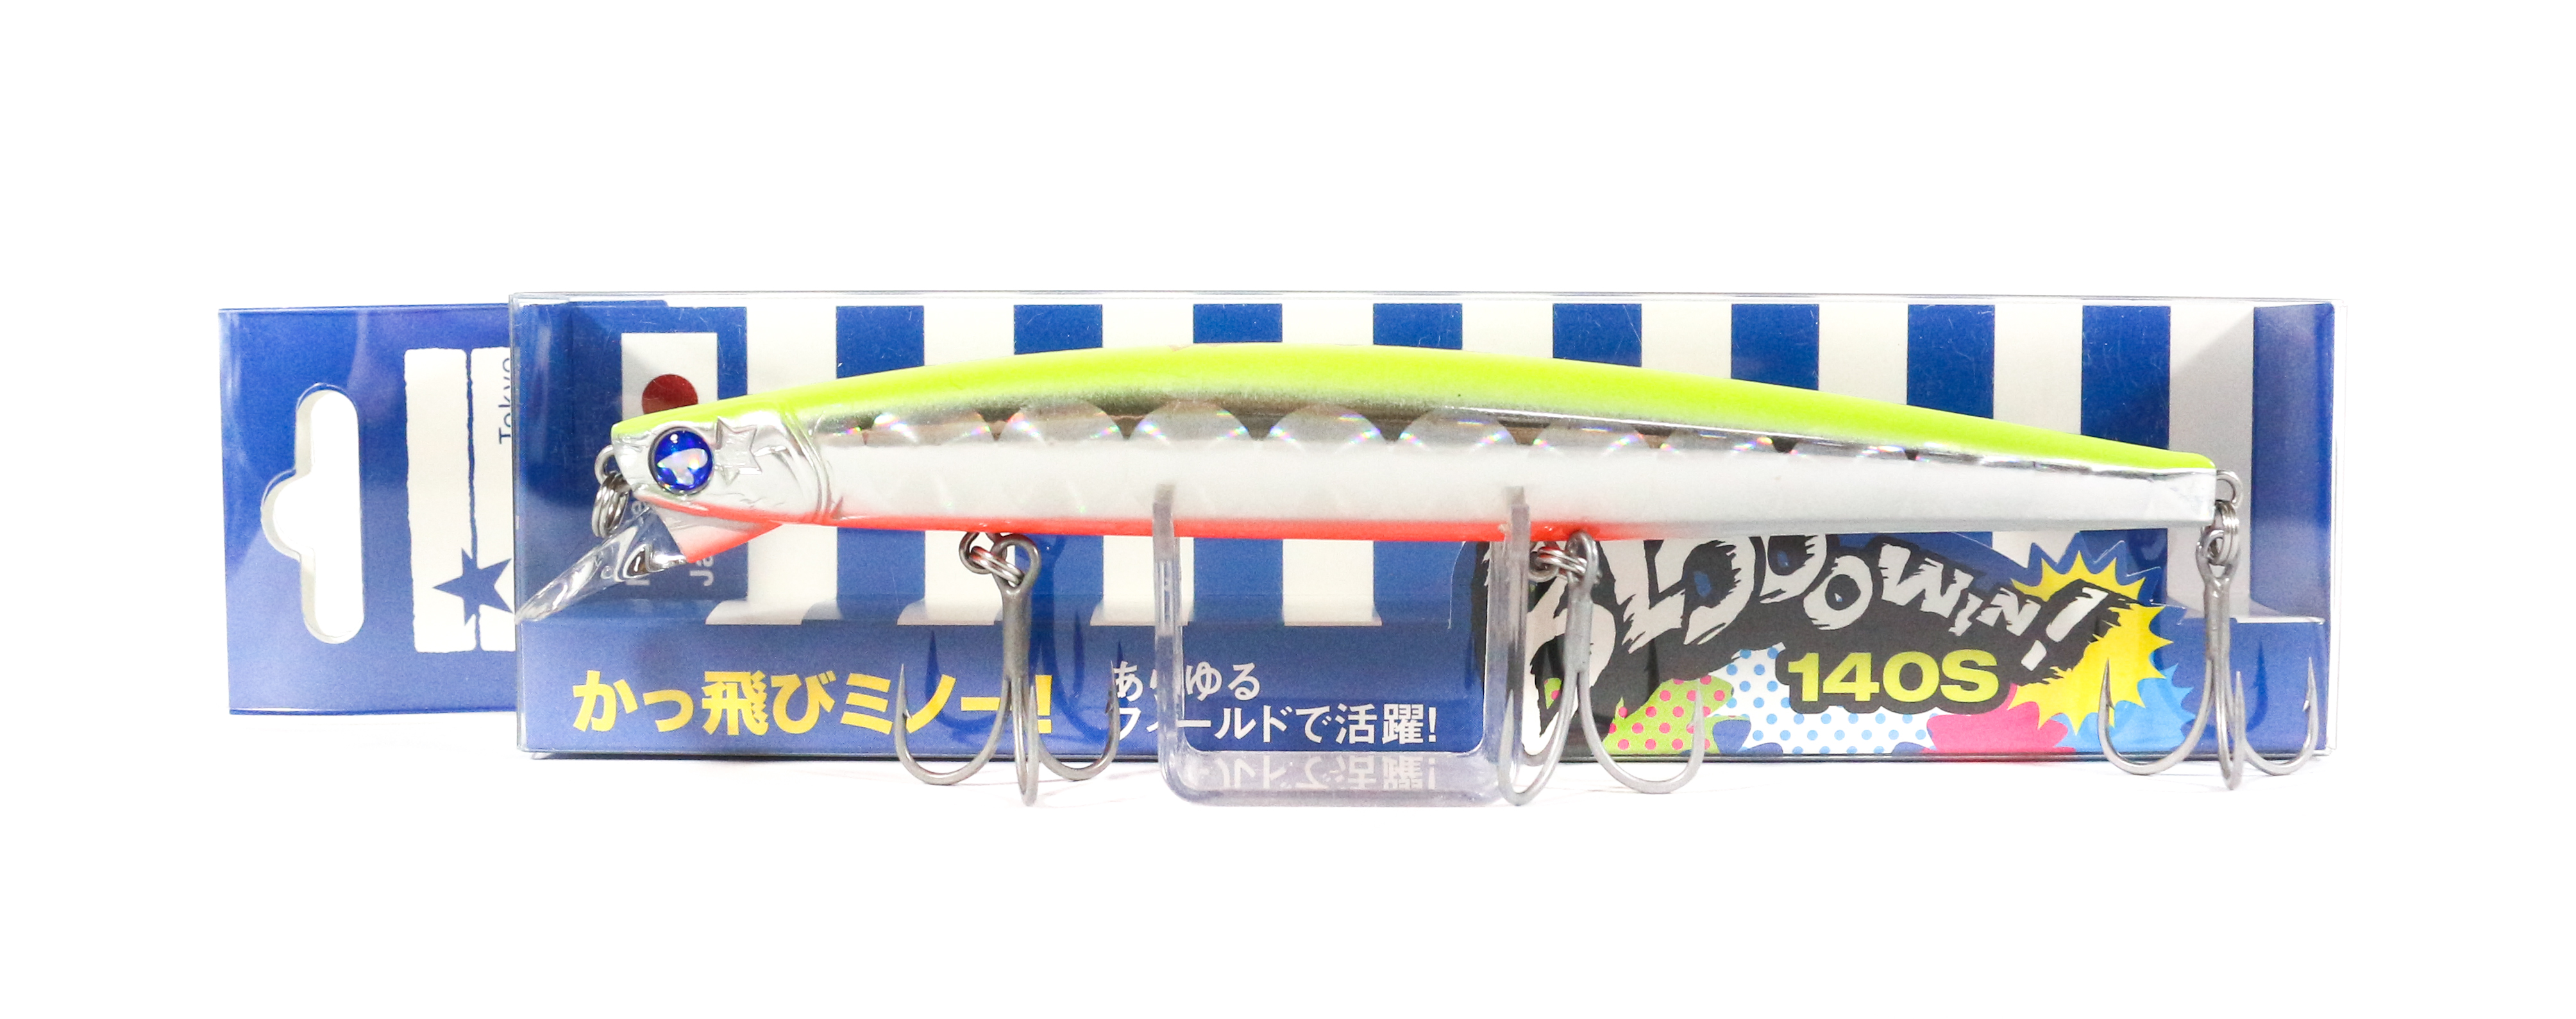 Blue Blue Blooowin 140S 23 grams Sinking Lure 19 (2102)